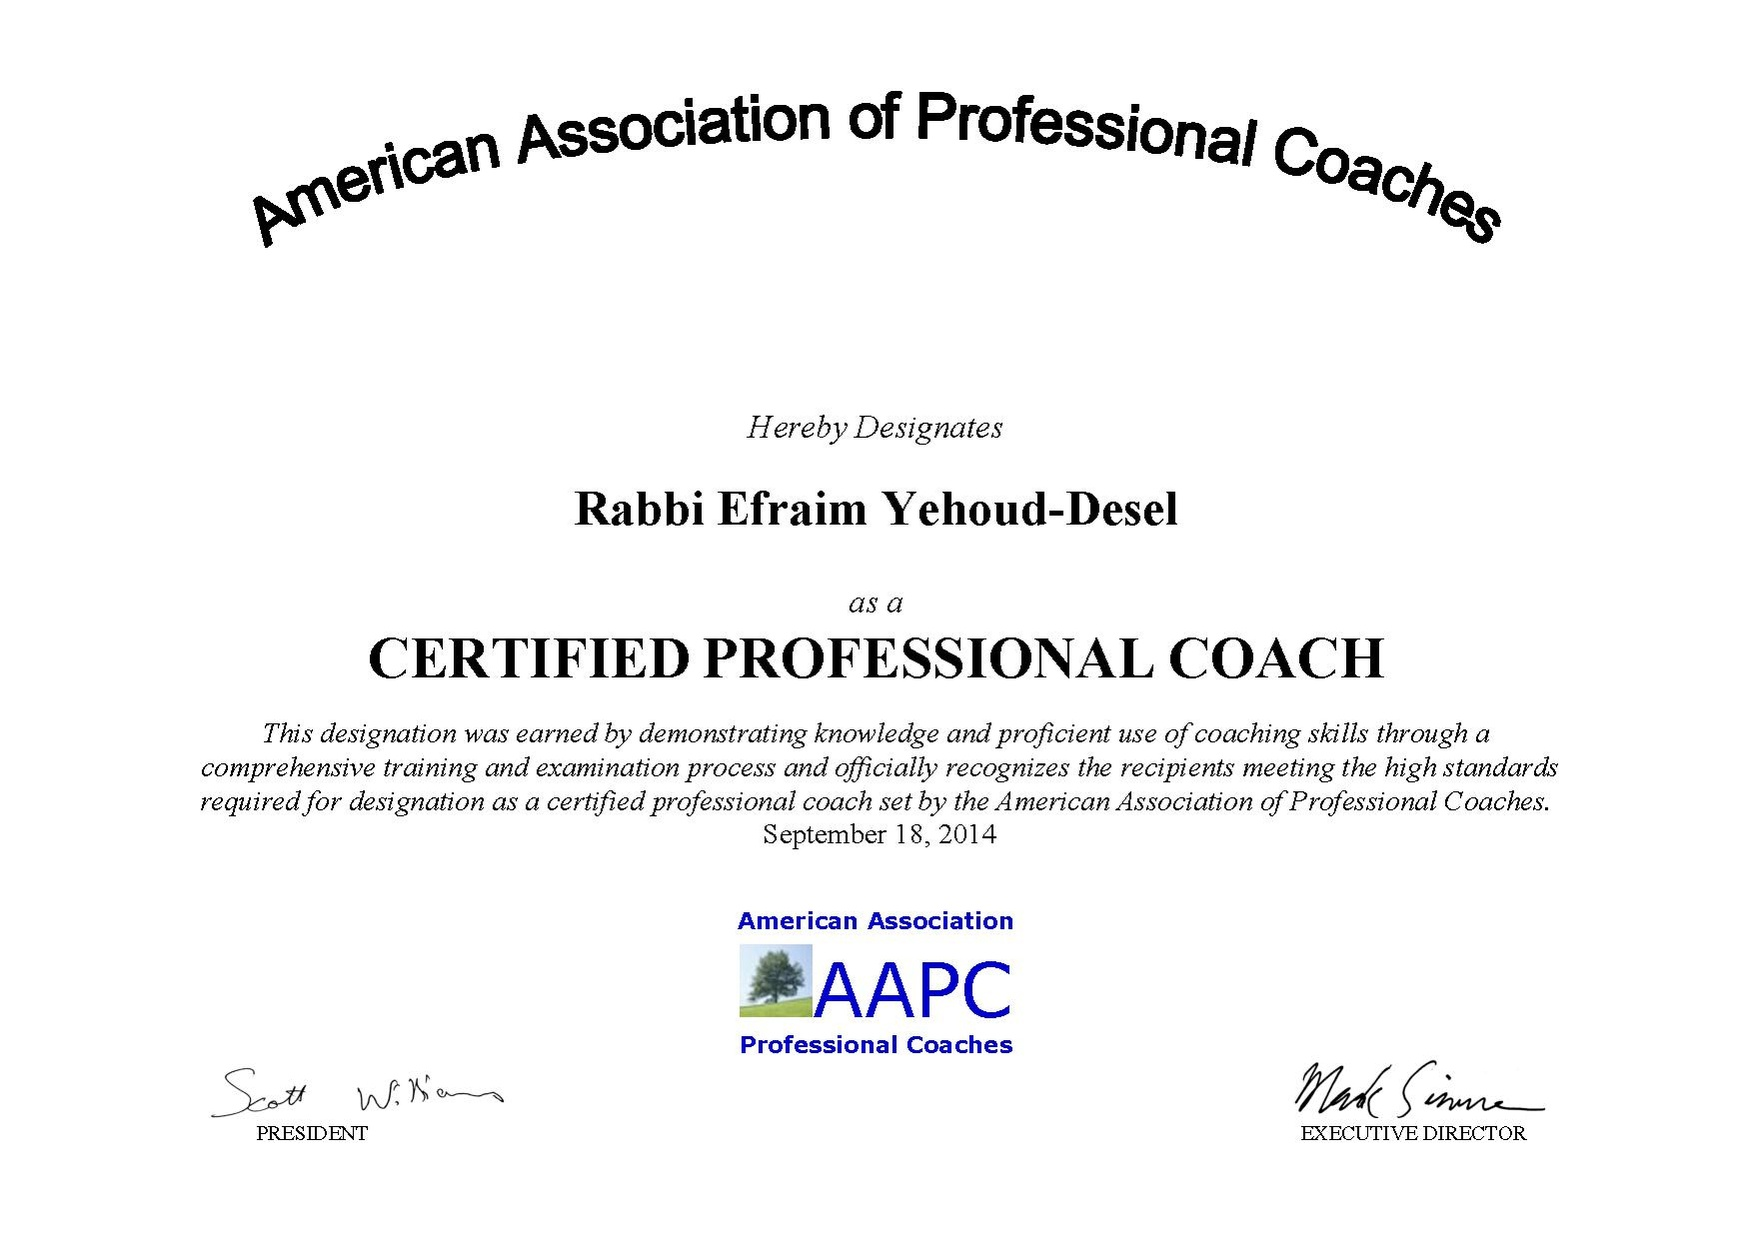 Aapc Certification Images Certificate Design Template Free